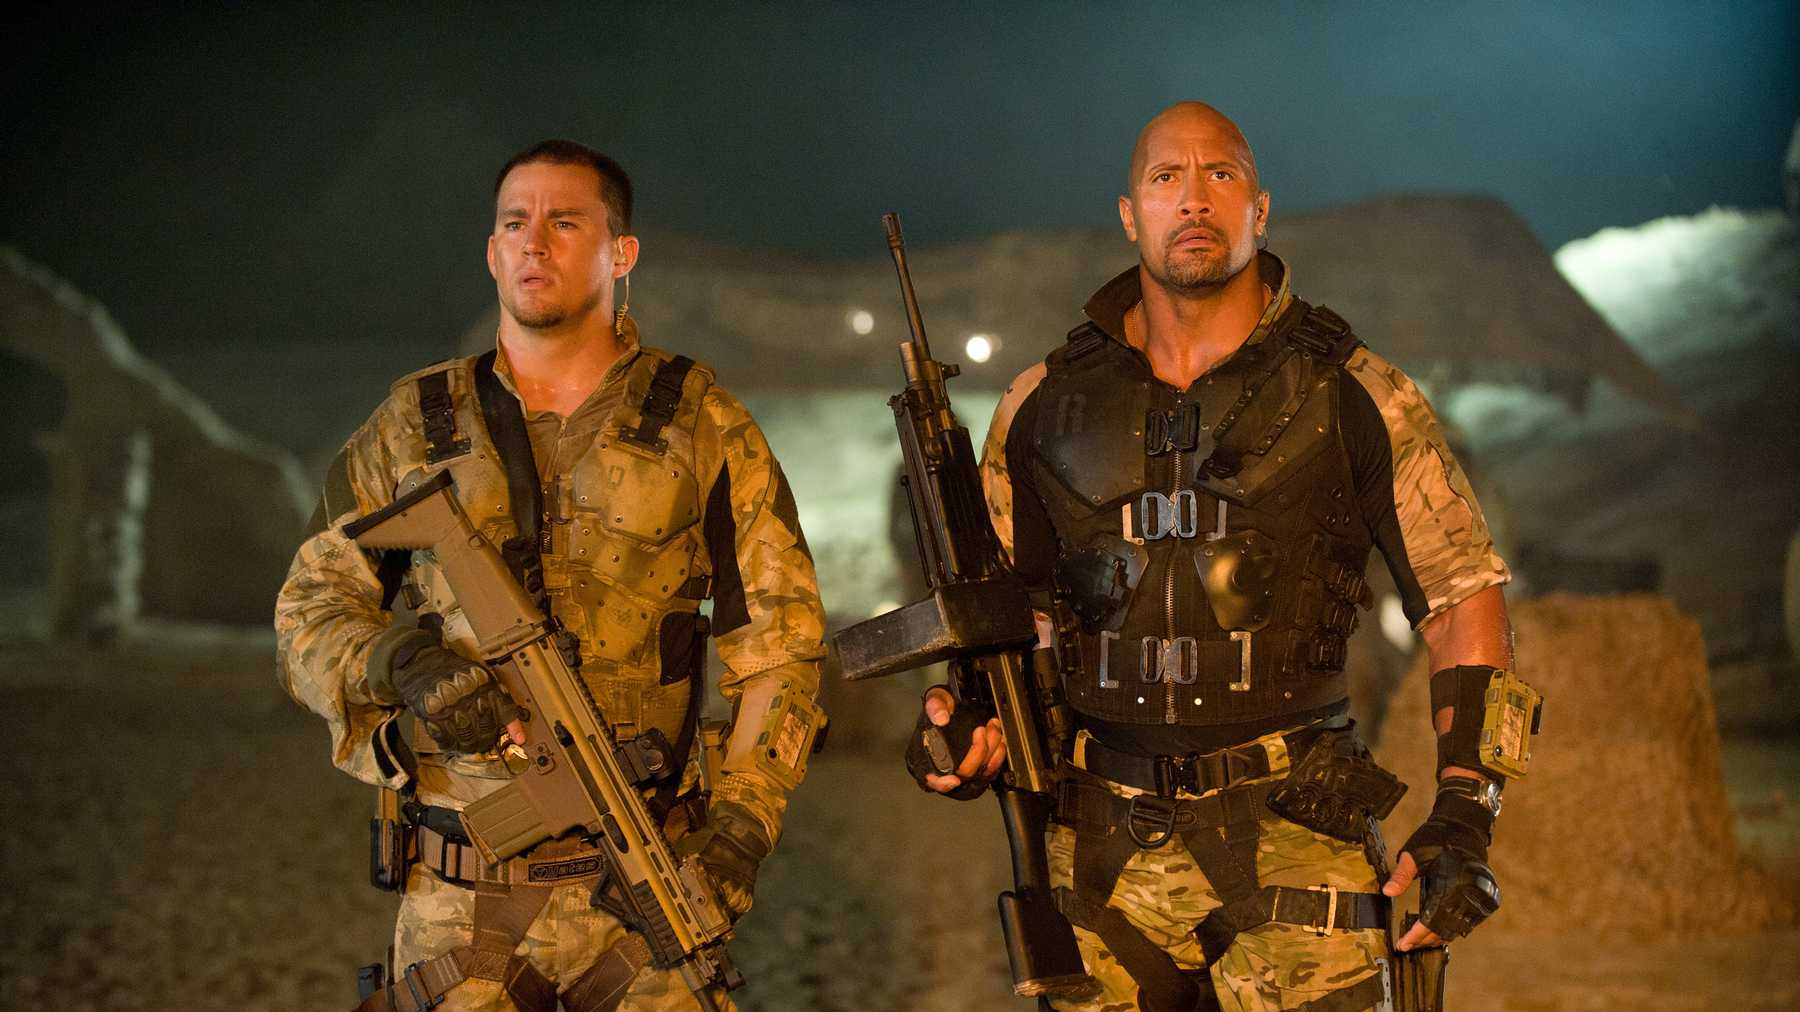 G.I. Joe Currently Working On Spinoffs